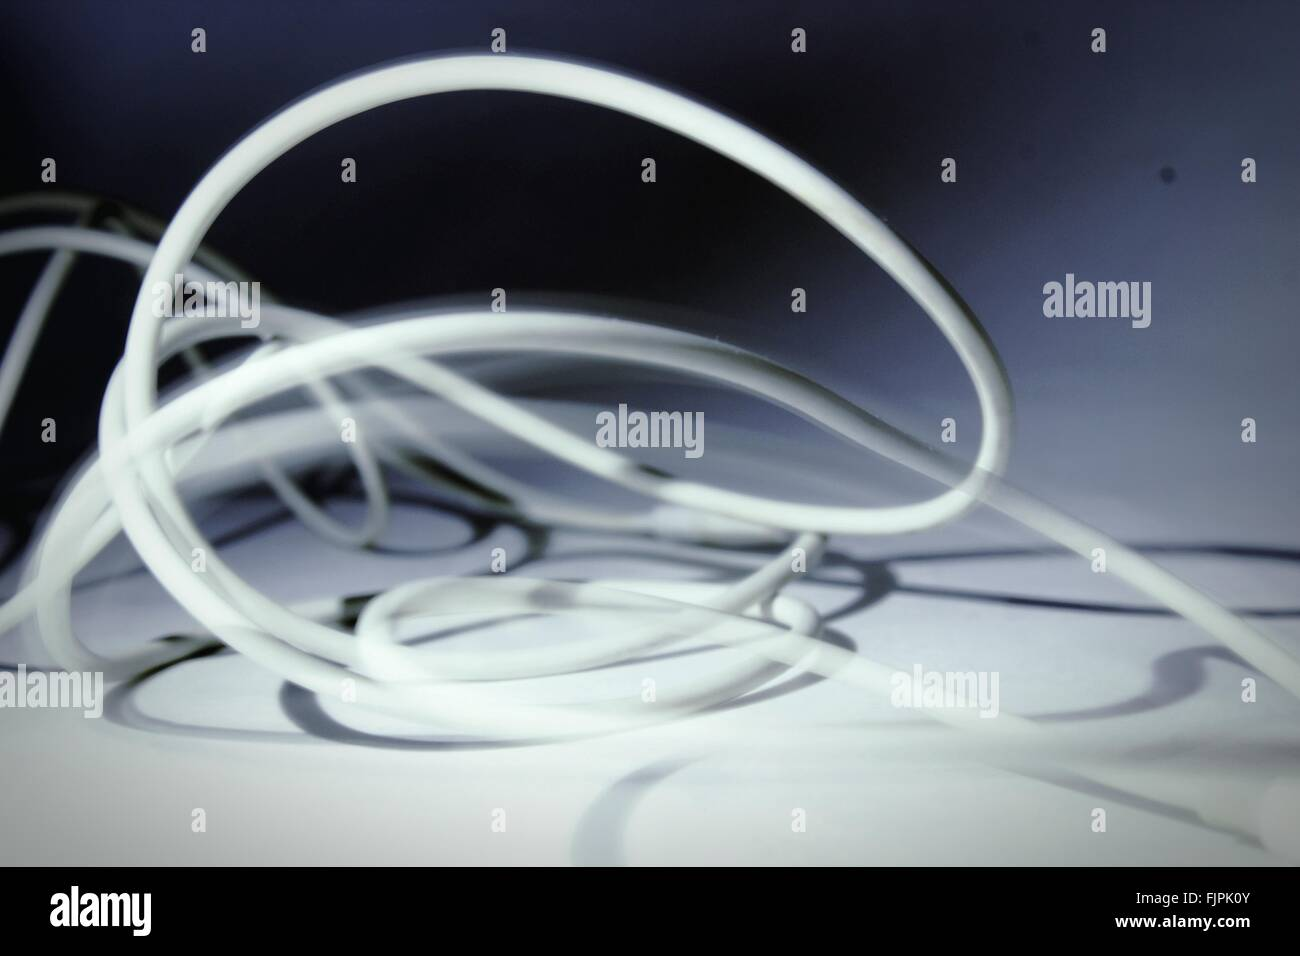 Close-Up Of Wires Against Plain Background - Stock Image